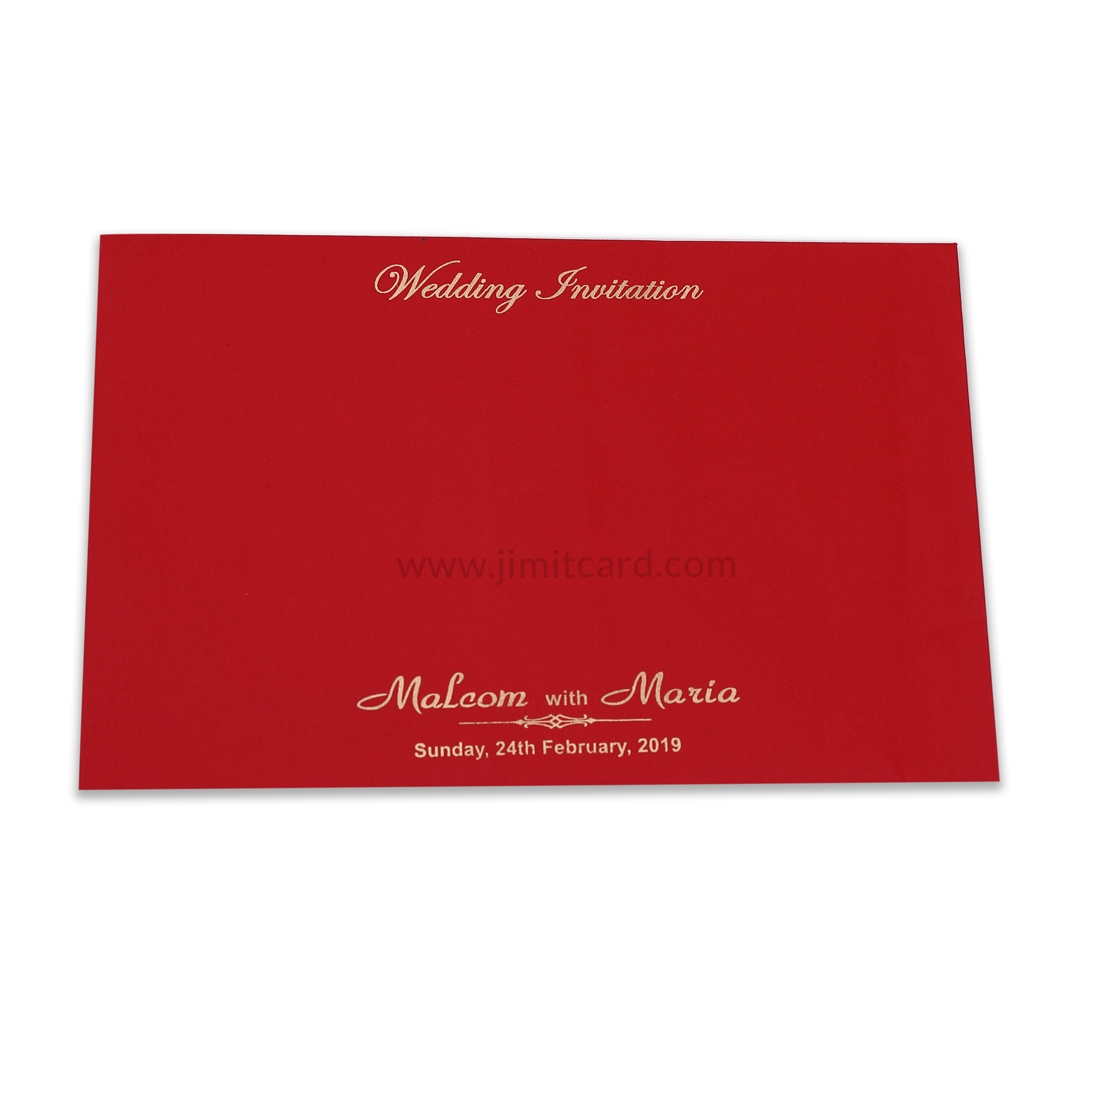 Red Color Wedding Card With Laser Cut Border and Red Ribbon-12187